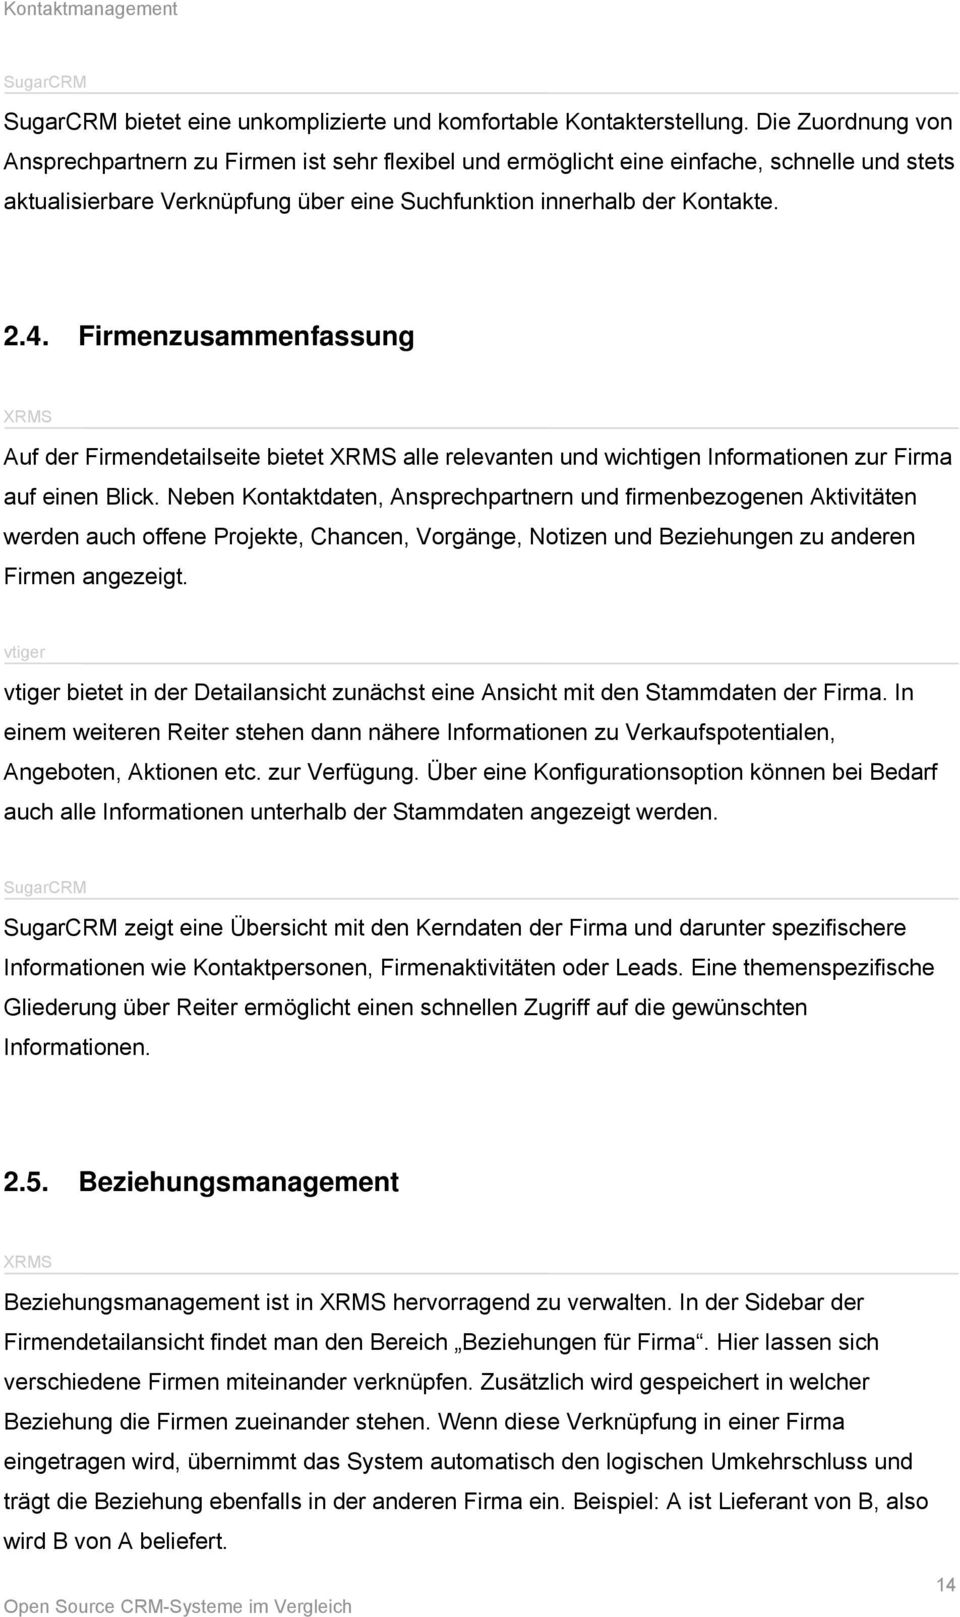 Beste Sugarcrm Vorlagen Fotos - Entry Level Resume Vorlagen Sammlung ...